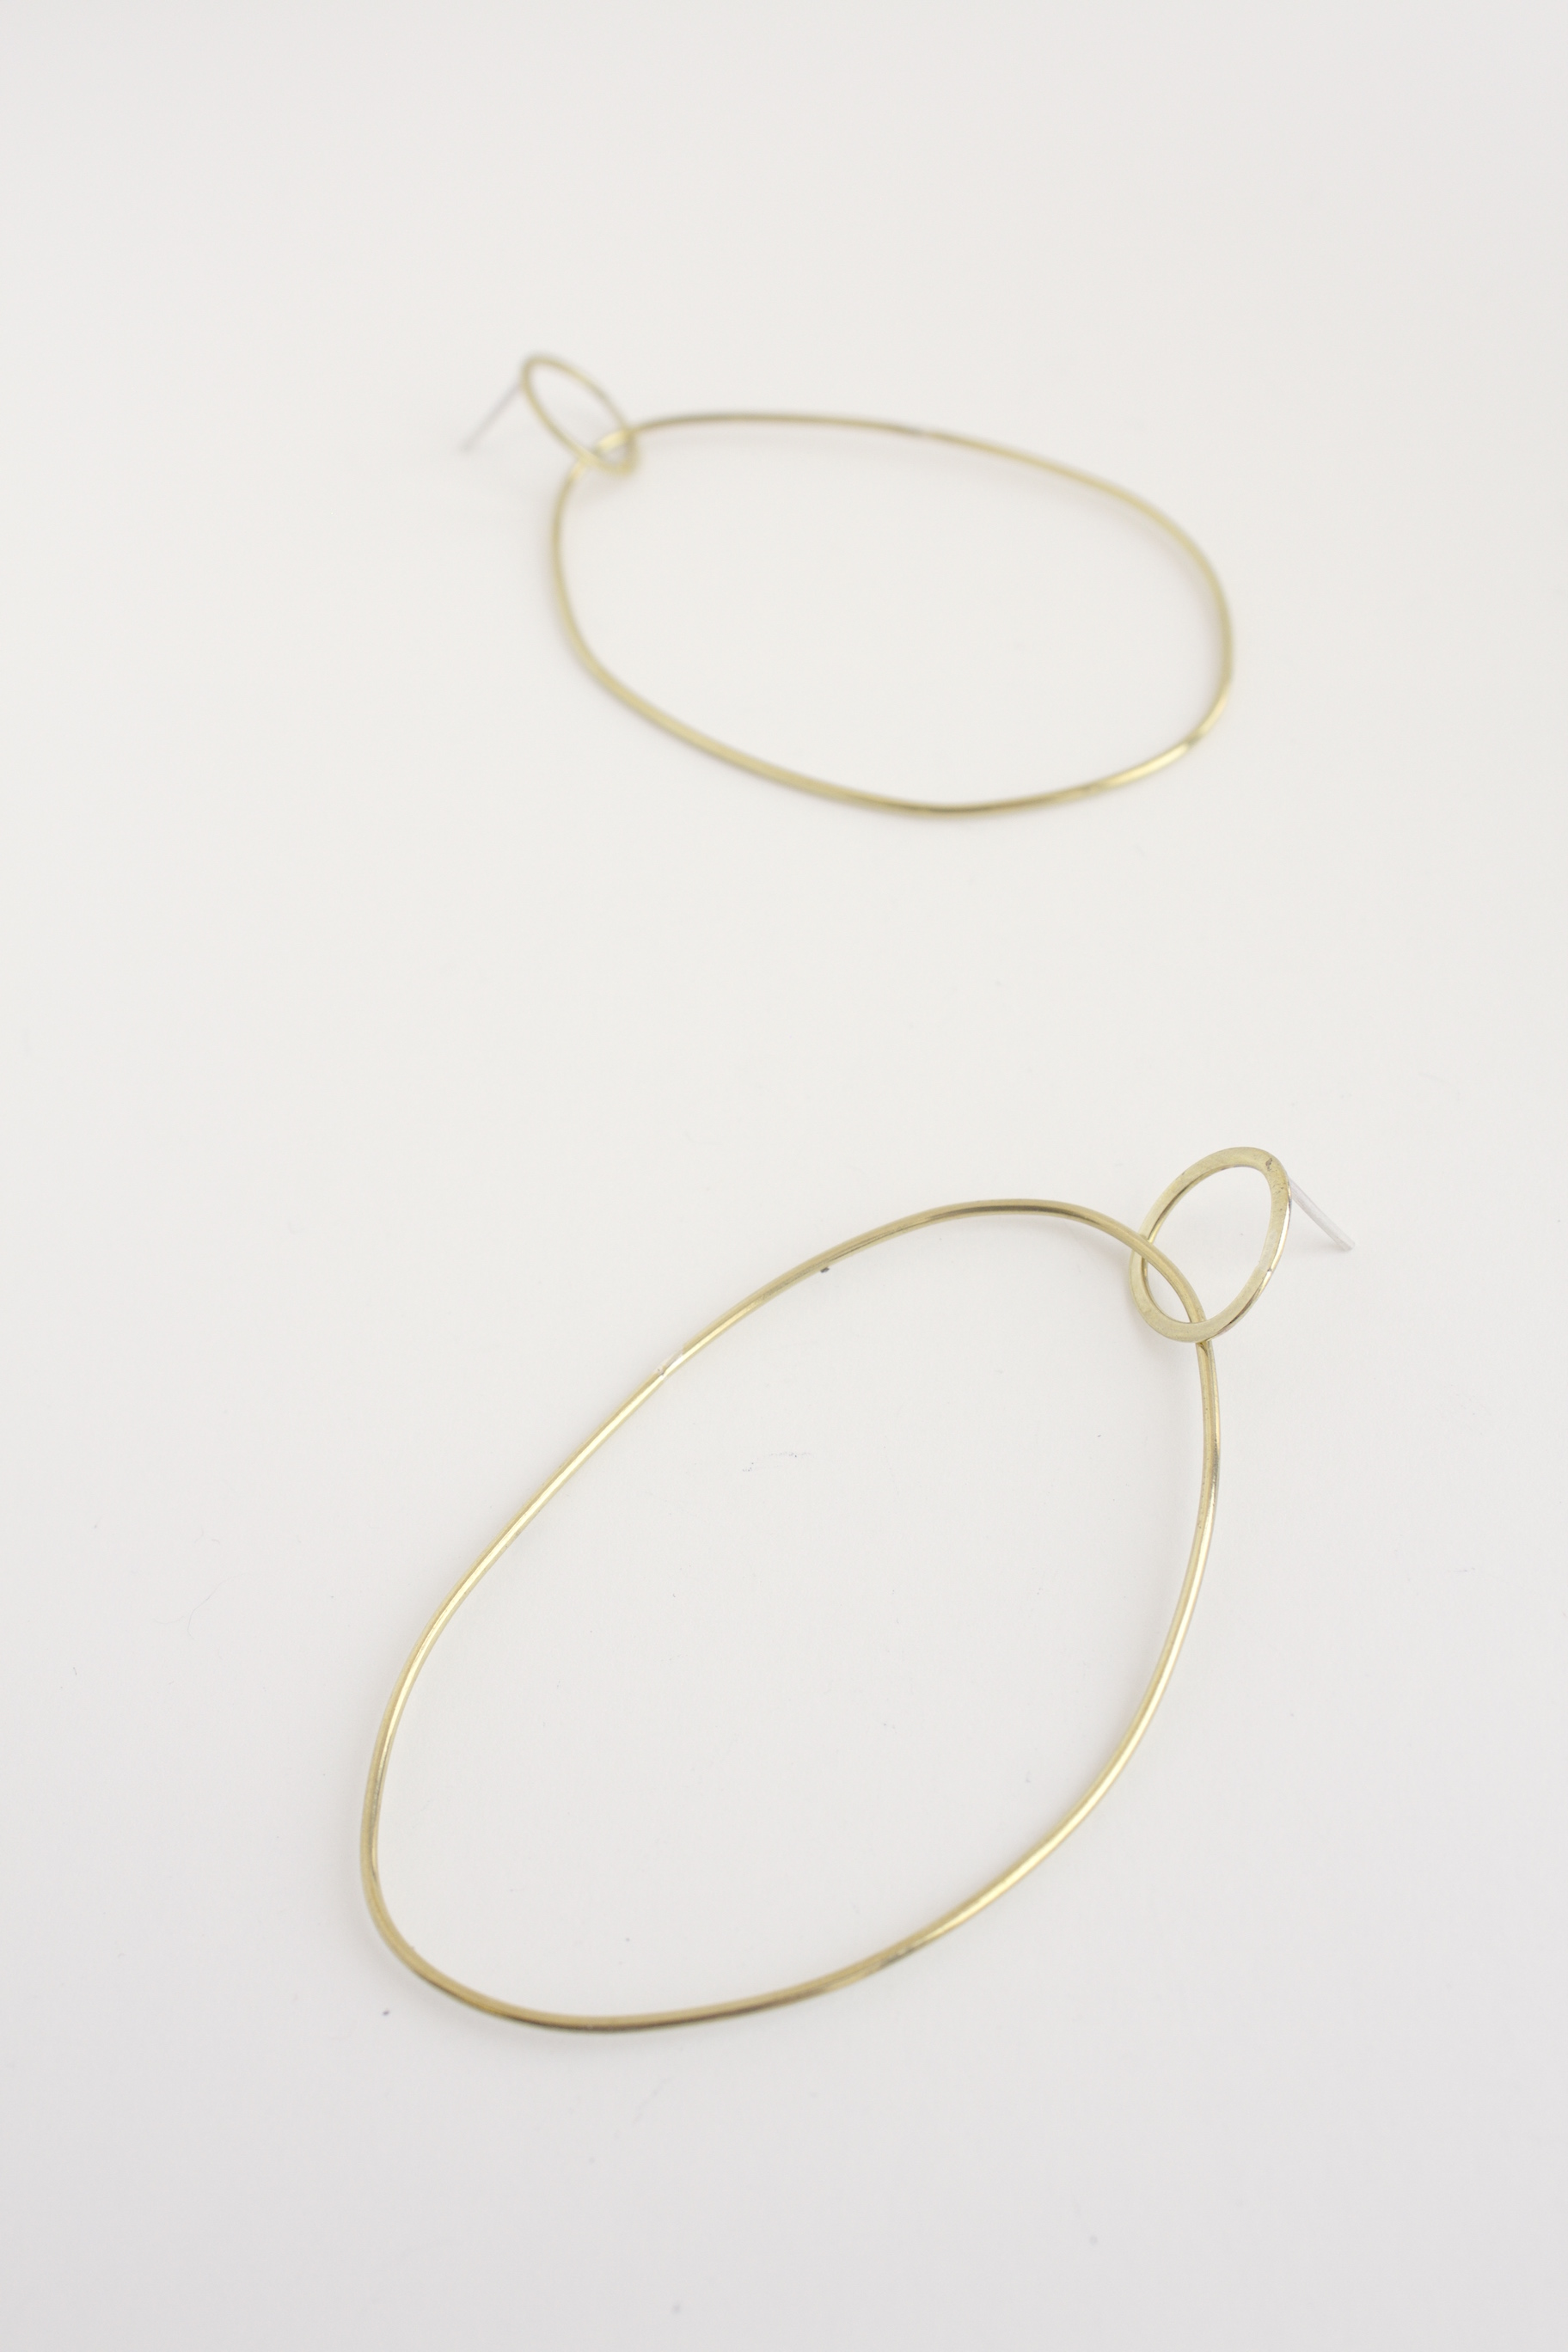 A mix between the old and new, this earring is both modern and classic.